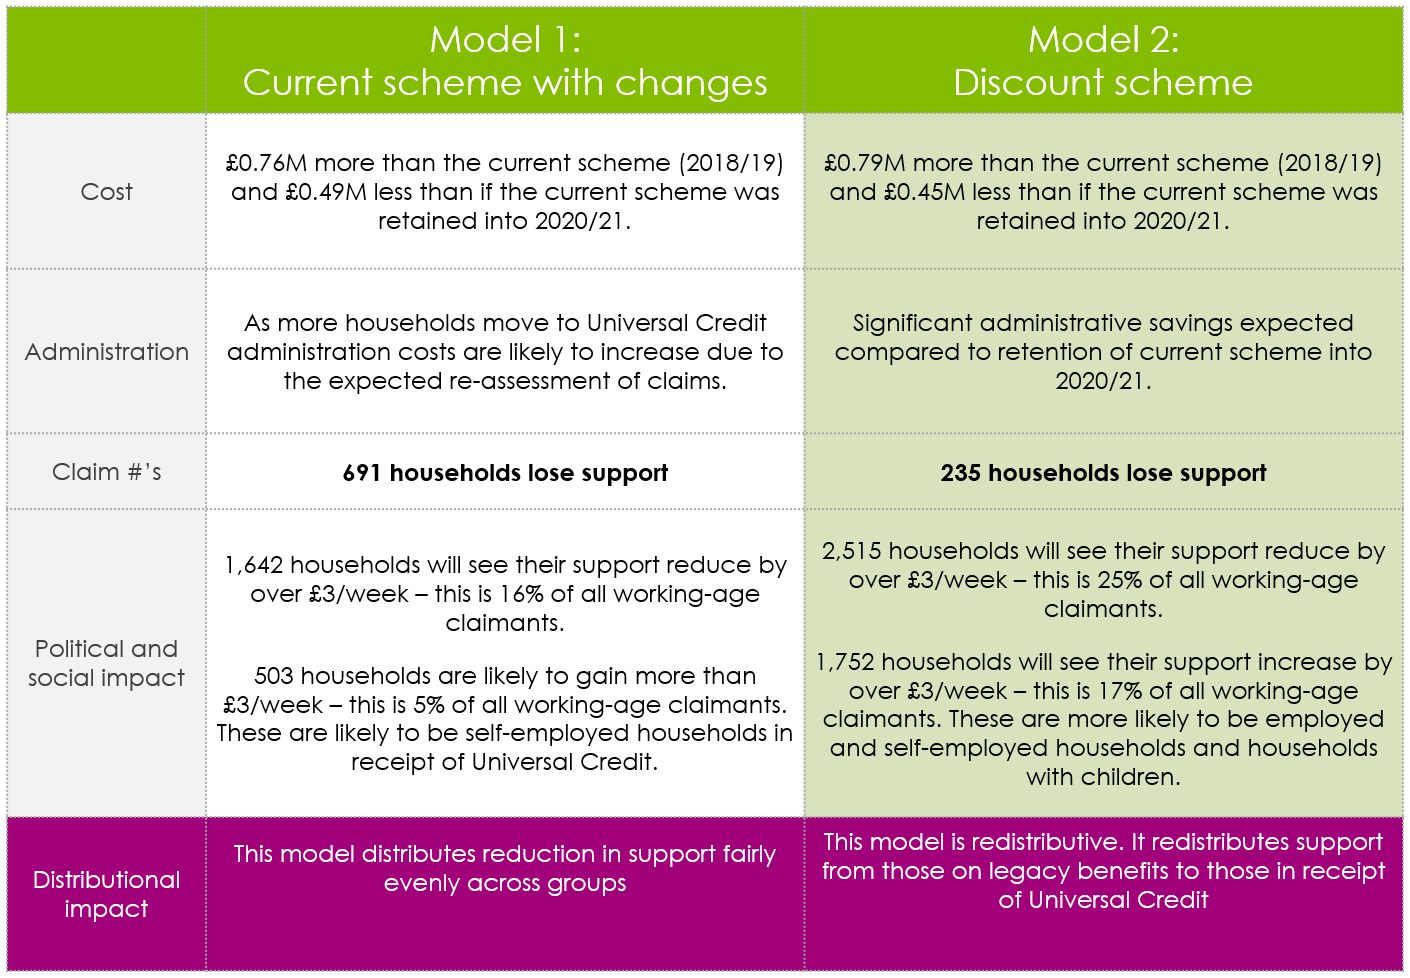 Council tax support modelling case study comparing discount scheme with current scheme